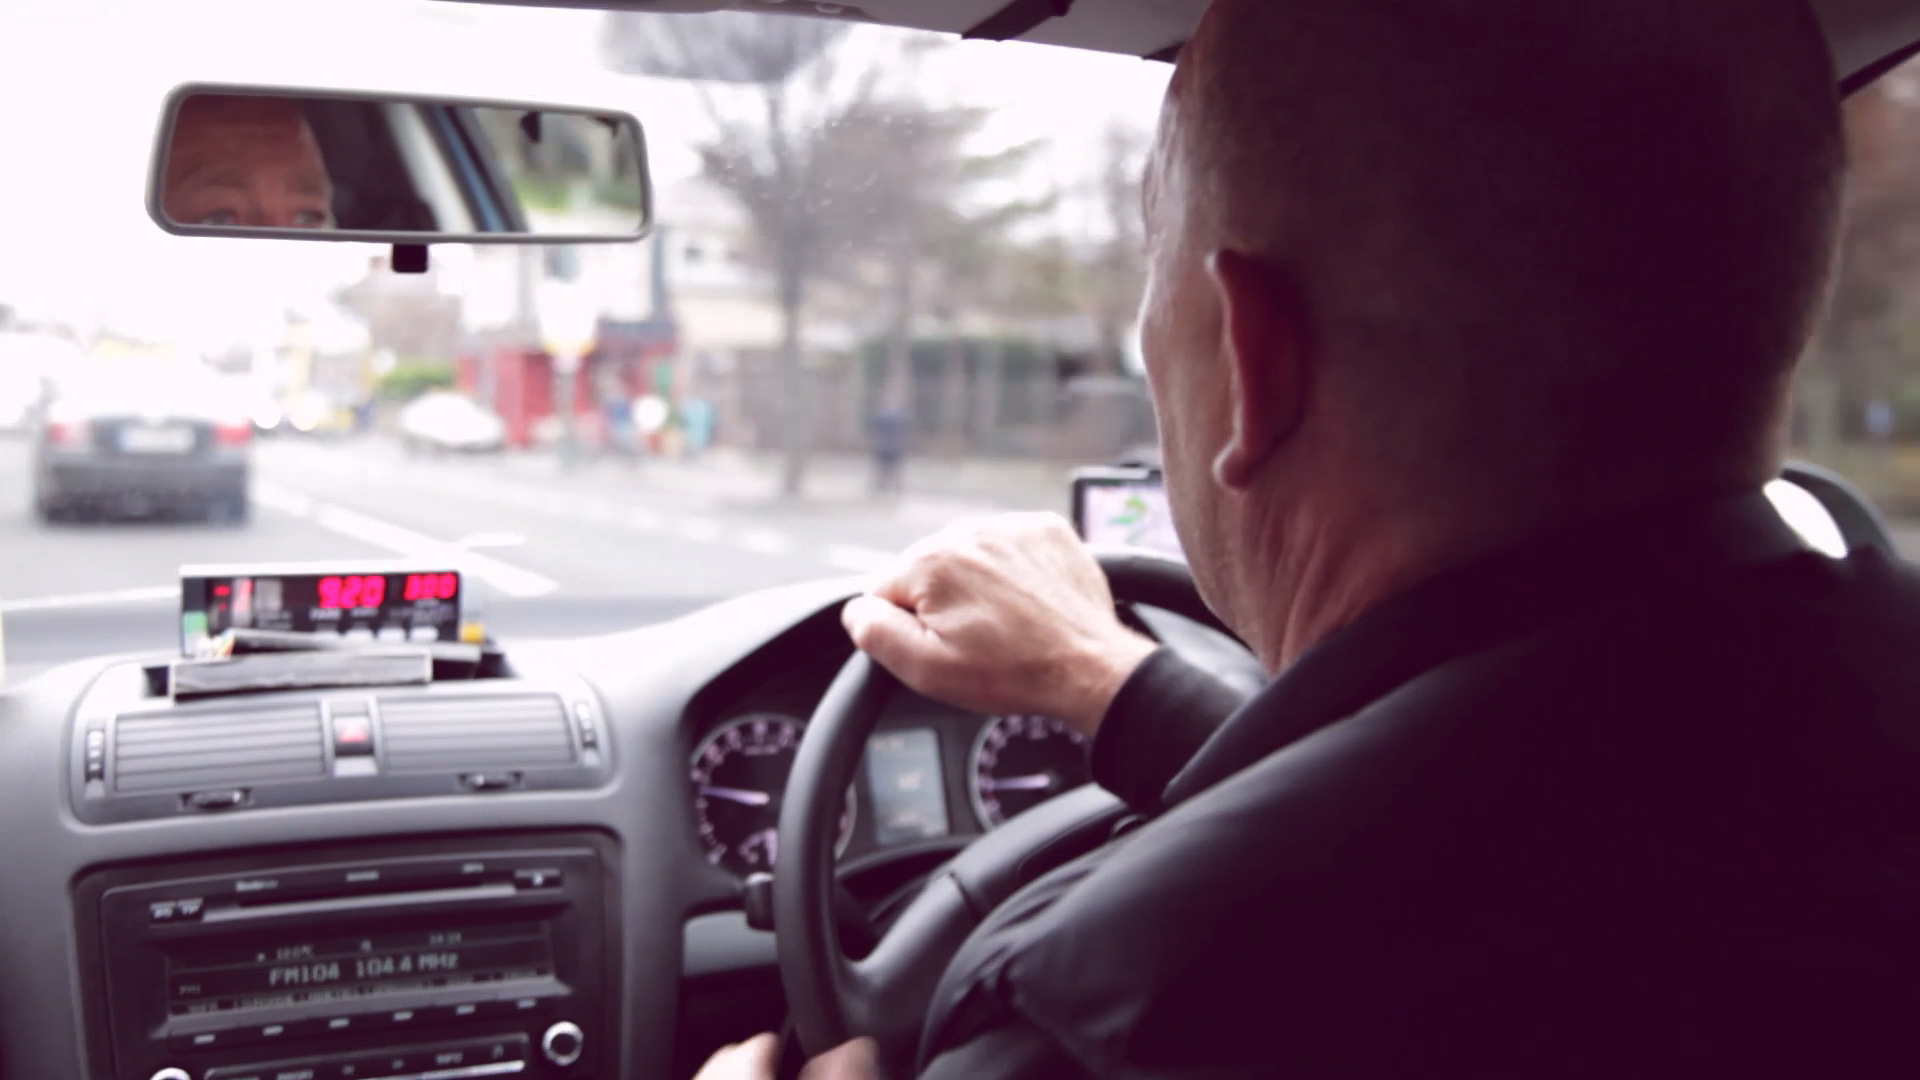 Rothco Reveals its Strategy Secrets in This Lovely Valentine's Taxi Film